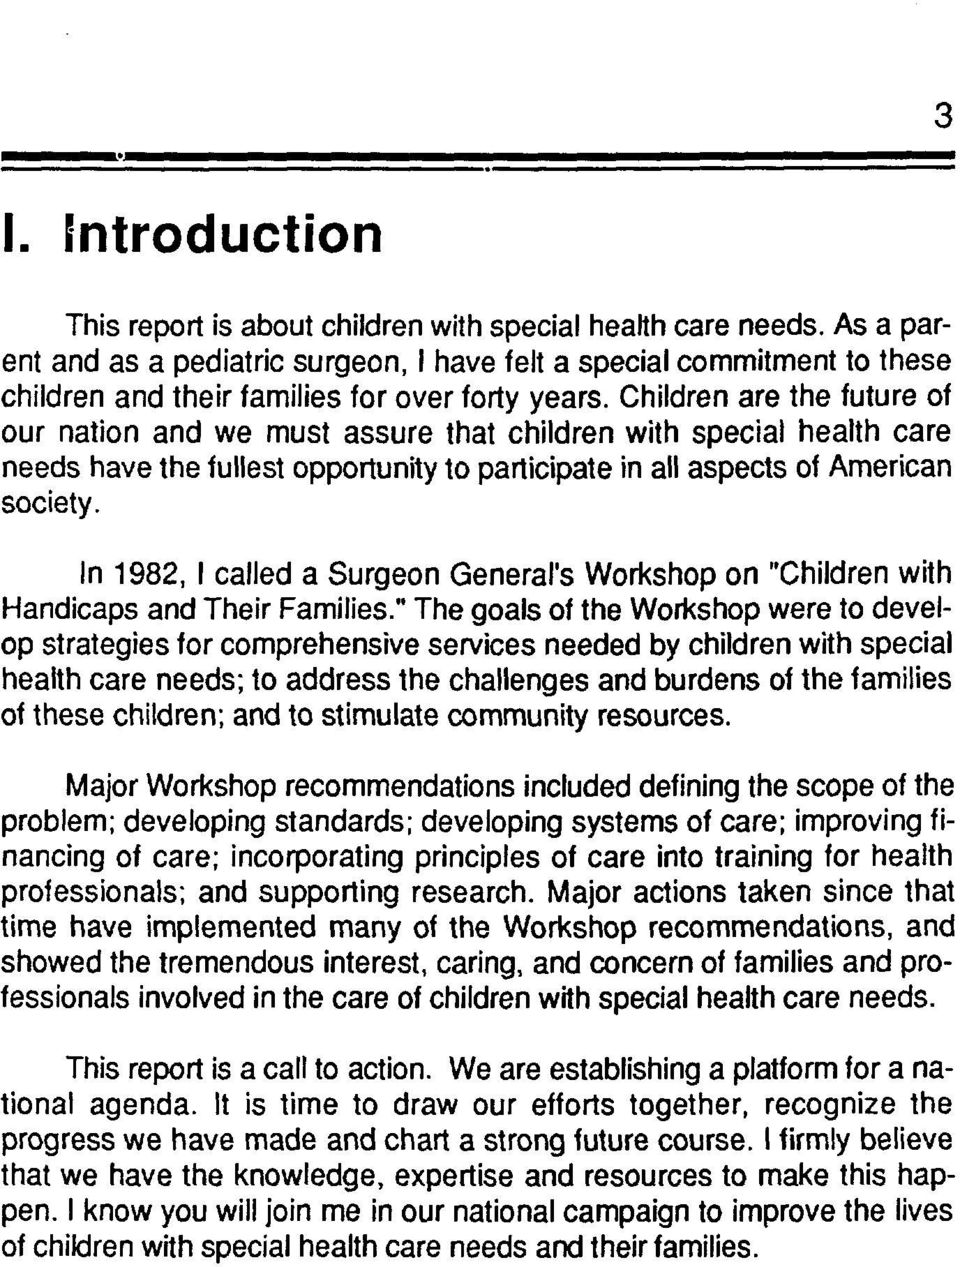 Chidren are the future of our nation and we must assure that chidren with specia heath care needs have the fuest opportunity to participate in a aspects of American society.